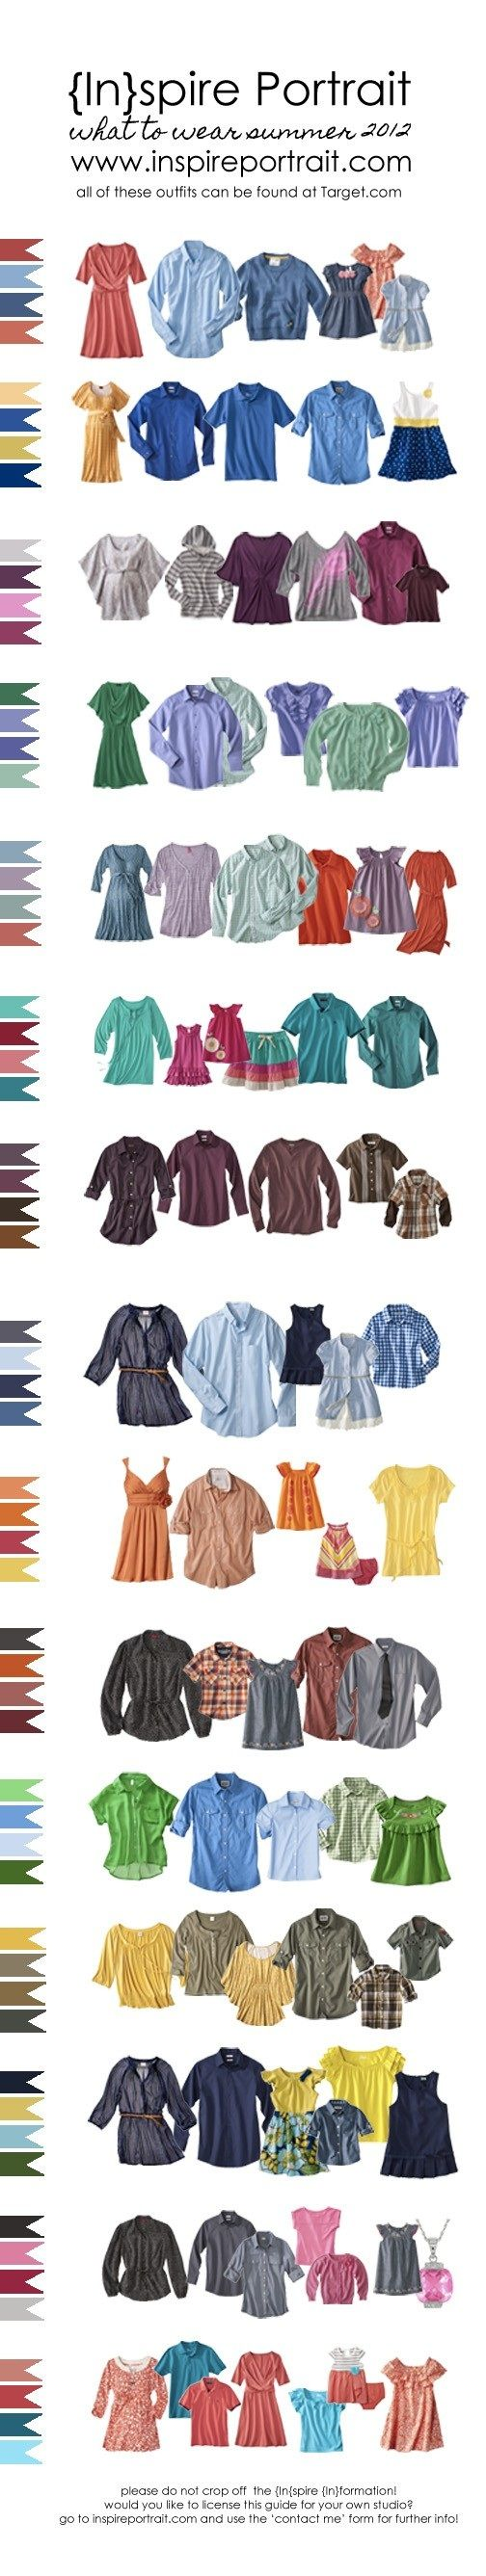 some great clothing combos for family portraits @Dusty Nance @Leslee Nance